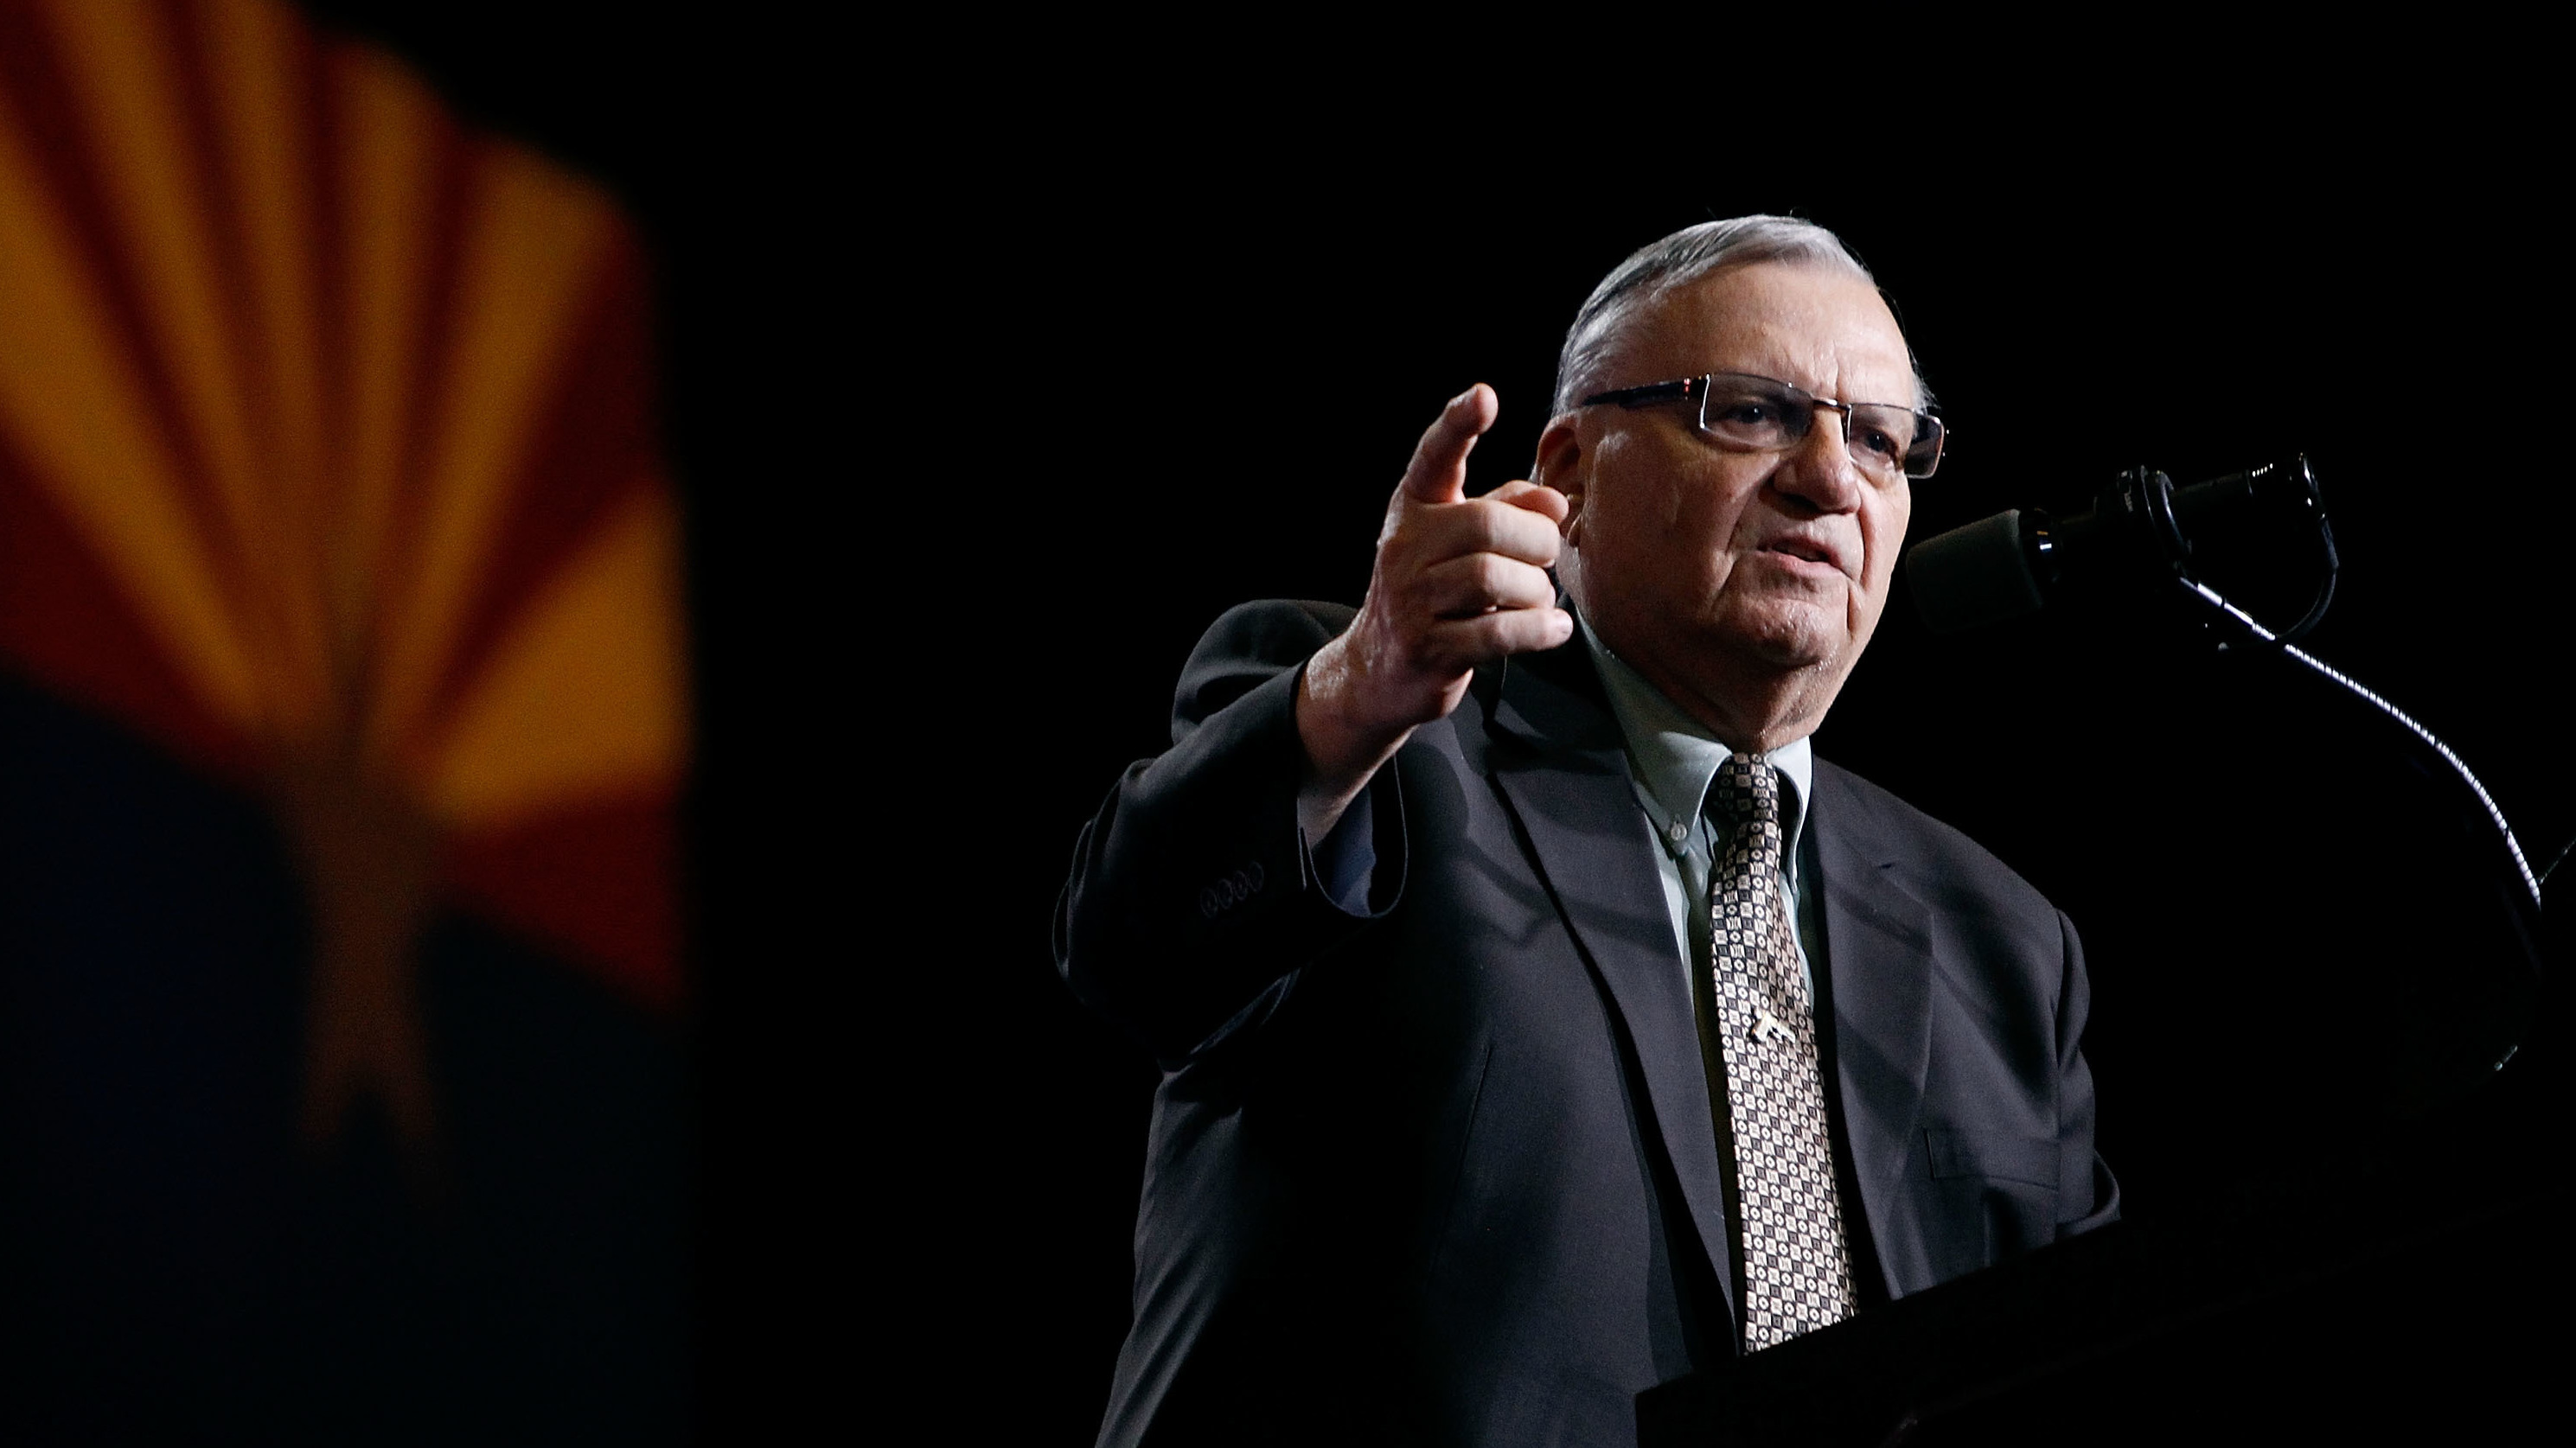 Maricopa County Sheriff Joe Arpaio campaigns for Donald Trump Aug. 31 in Phoenix. Ralph Freso/Getty Images